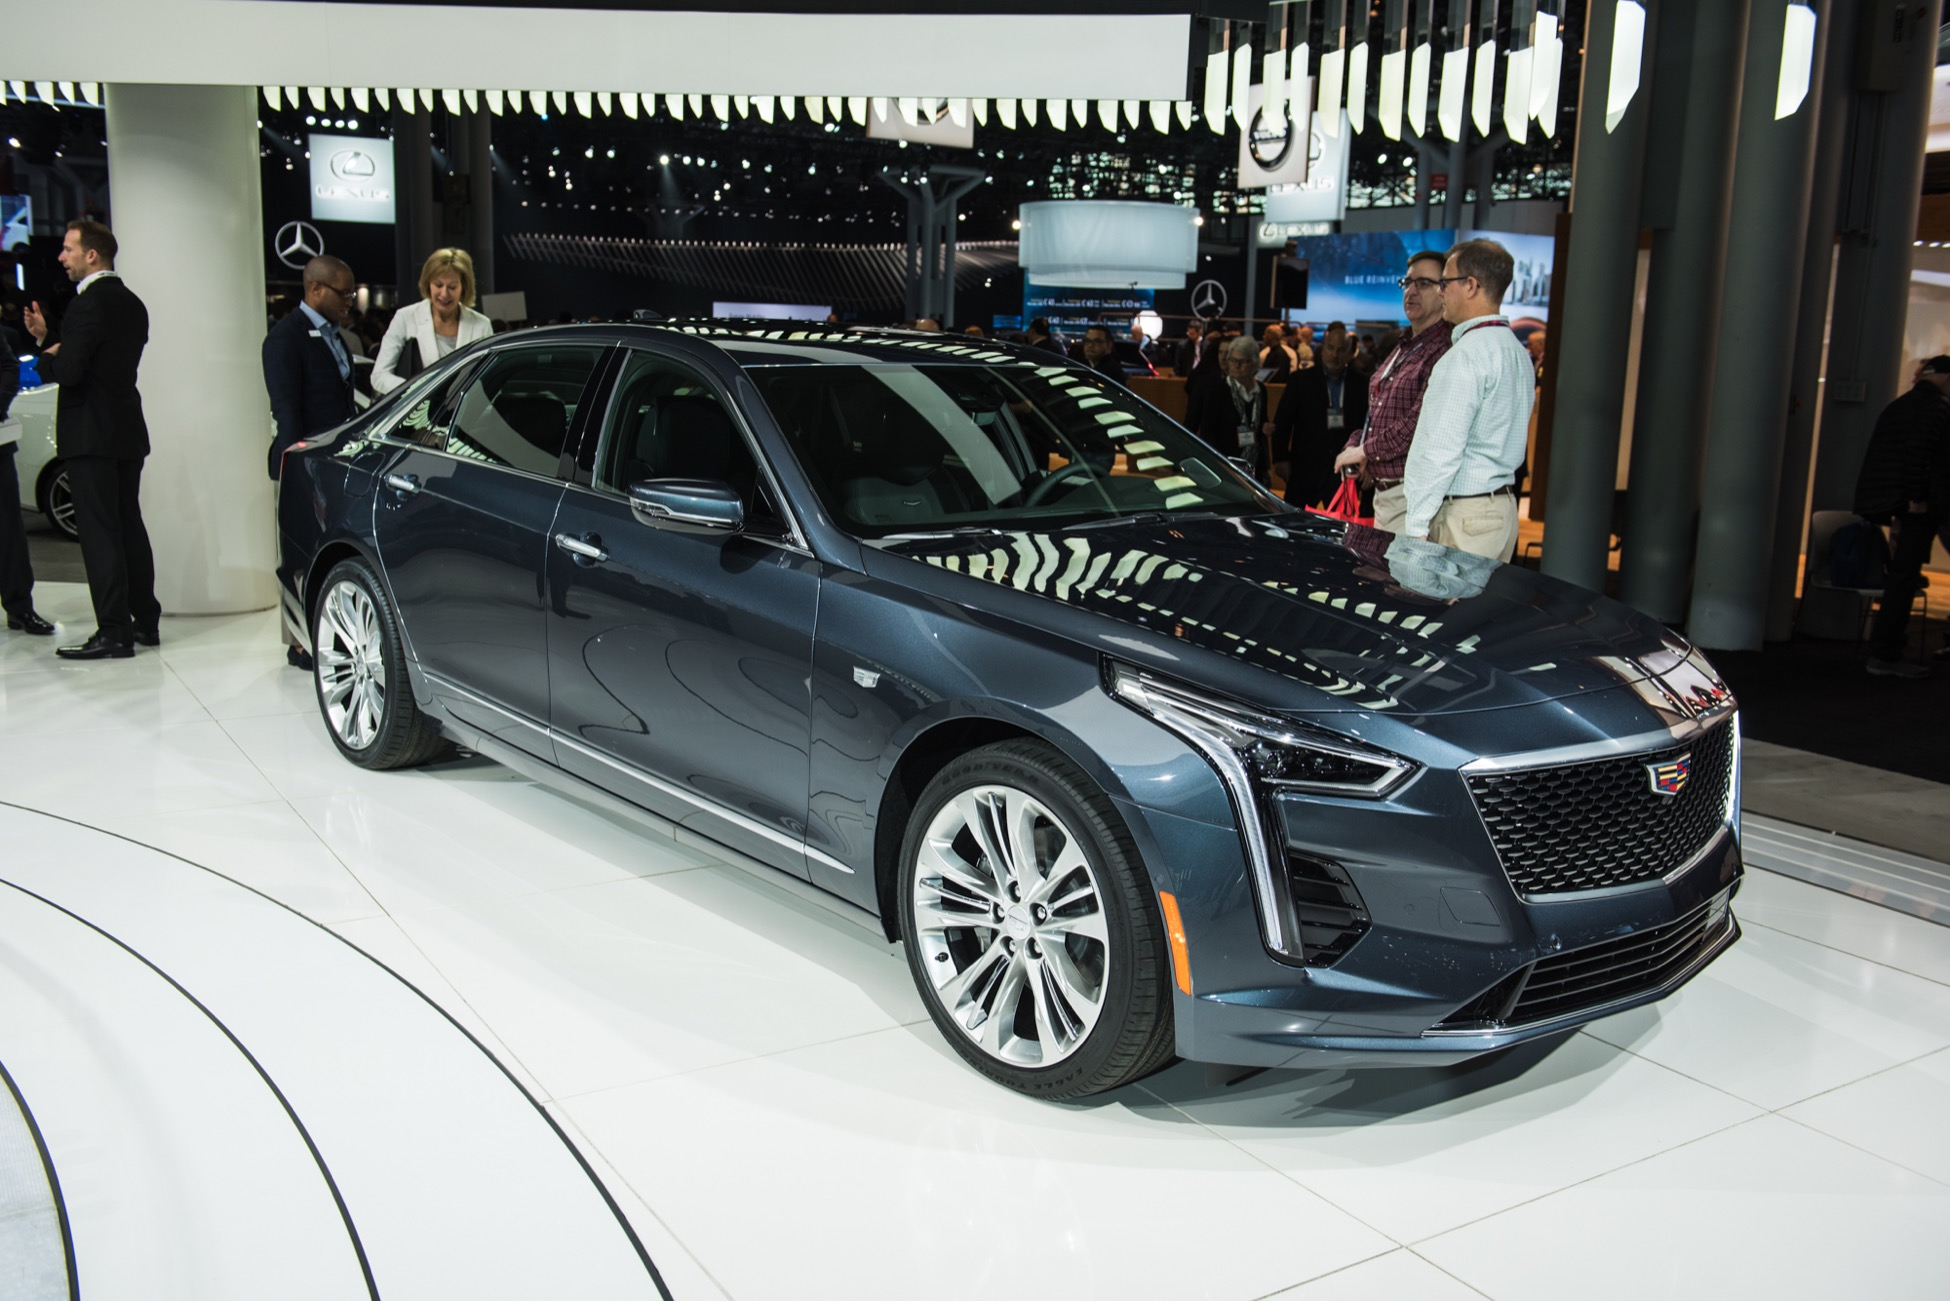 2019 Cadillac CT6 Pictures, Photos, Images, Spy Shots